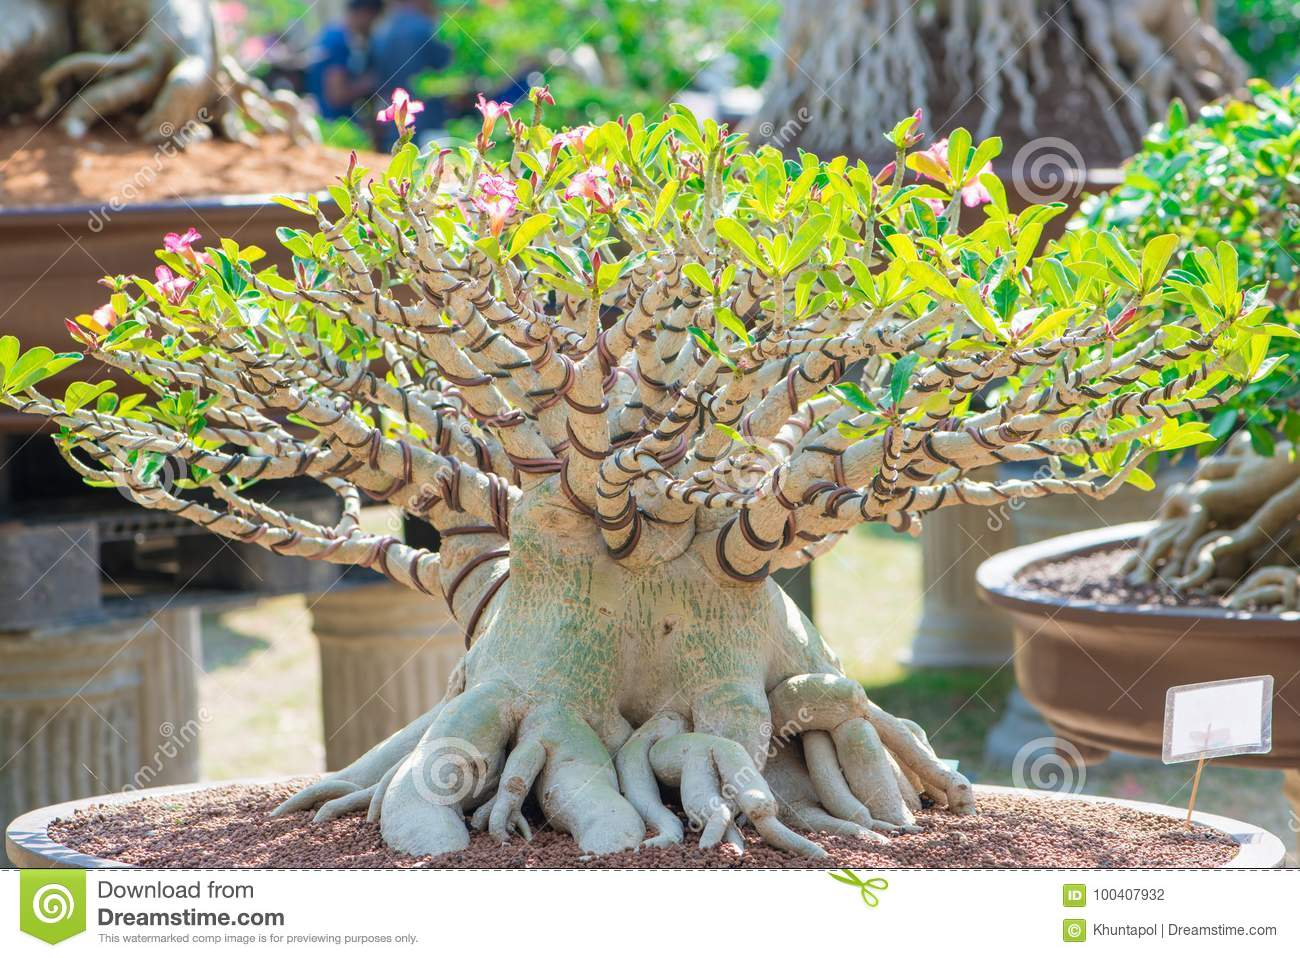 Bonsai Style Of Adenium Tree Or Desert Rose In Flower Pot Stock Photo Image Of Bright Growth 100407932